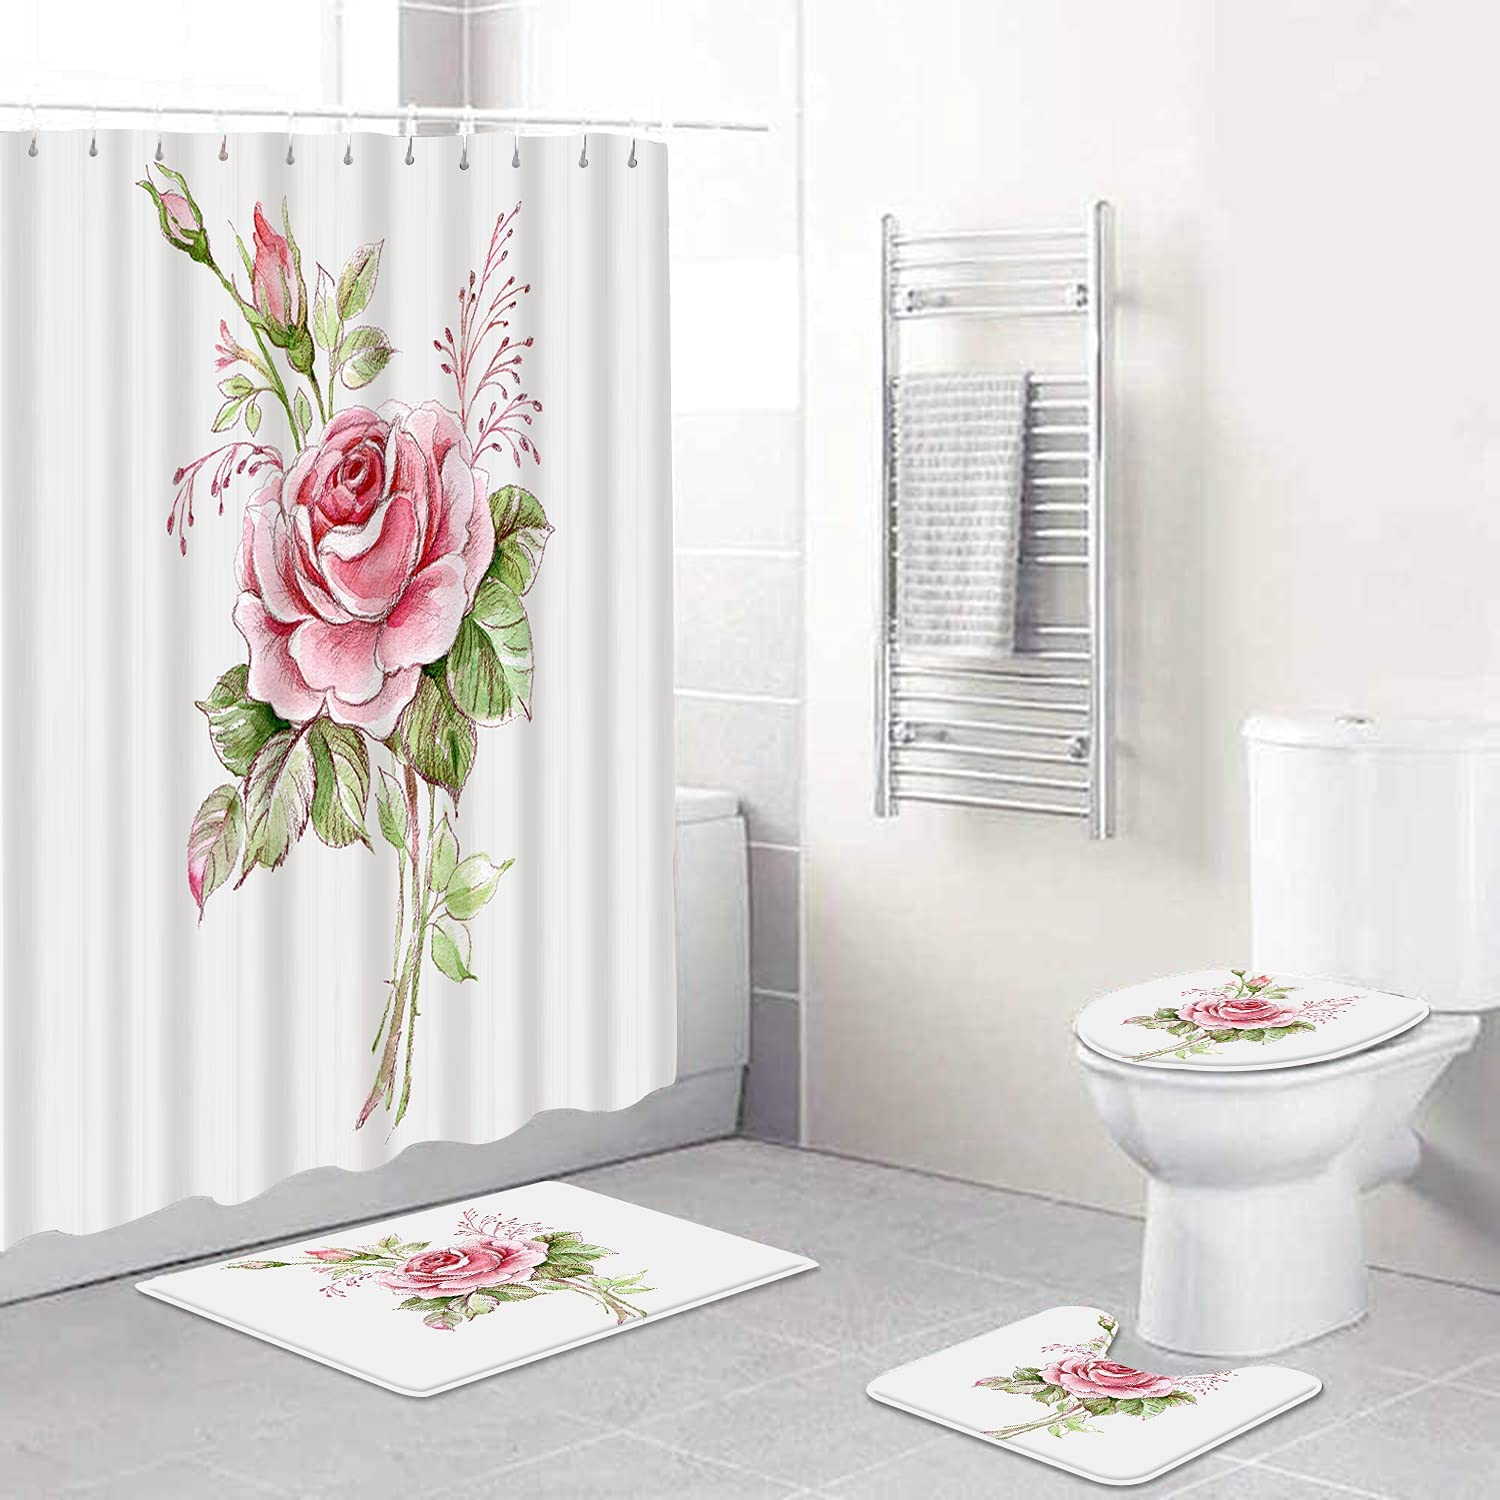 AIRMARK 4 Pcs Shower Curtain 2021new shipping free Sets Toilet Rugs Save money Lid Non-Slip with